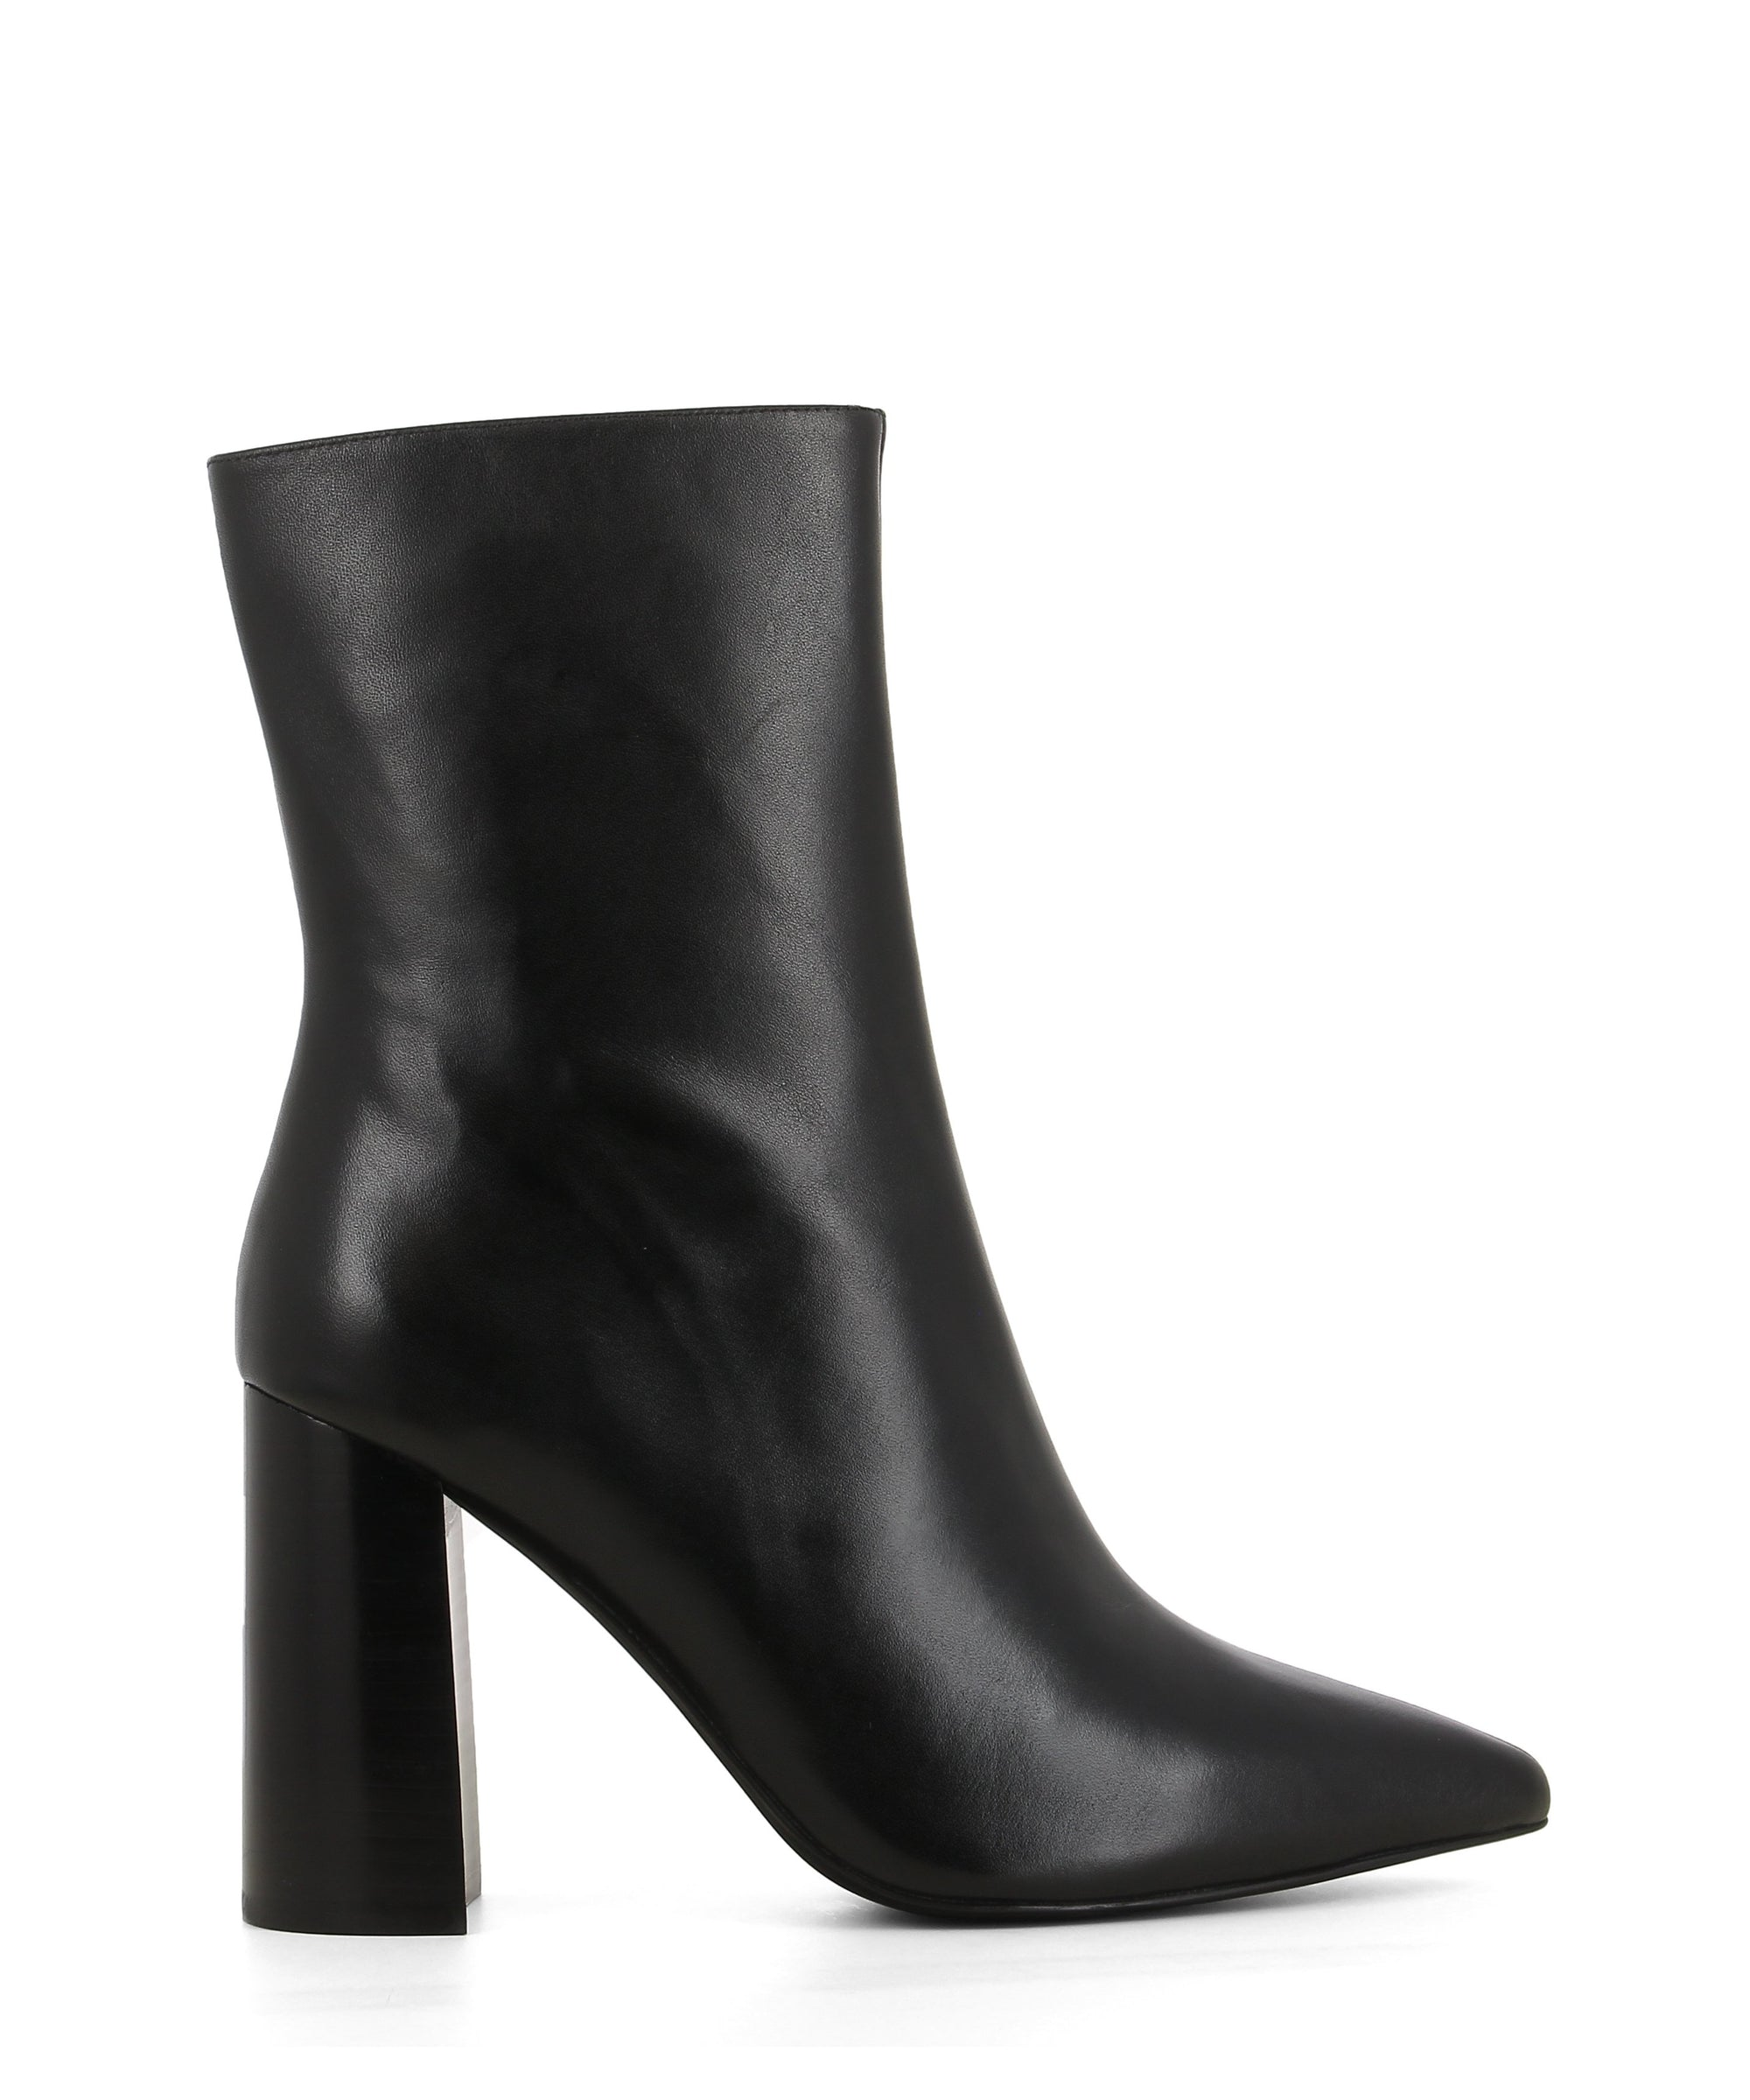 Black leather high heel ankle boot that has a zipper fastening and features a high 9cm block heel and a pointed toe by Jeffrey Campbell.